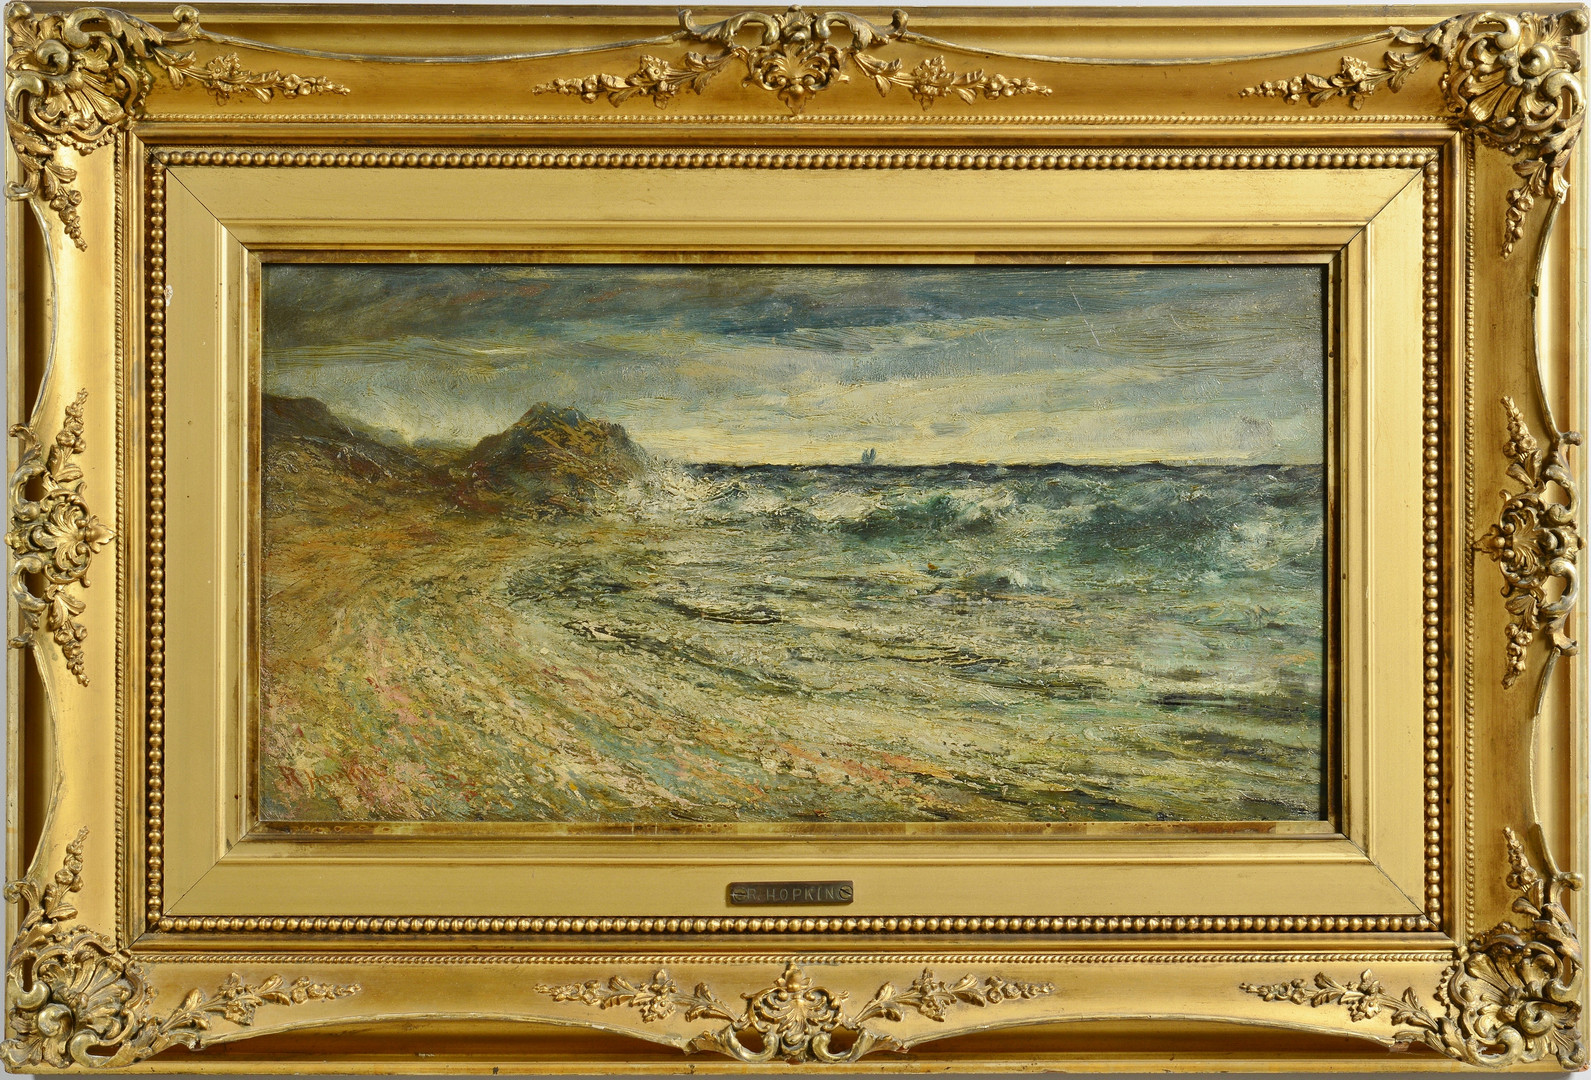 Lot 58: Robert Hopkin Oil on Board Seascape